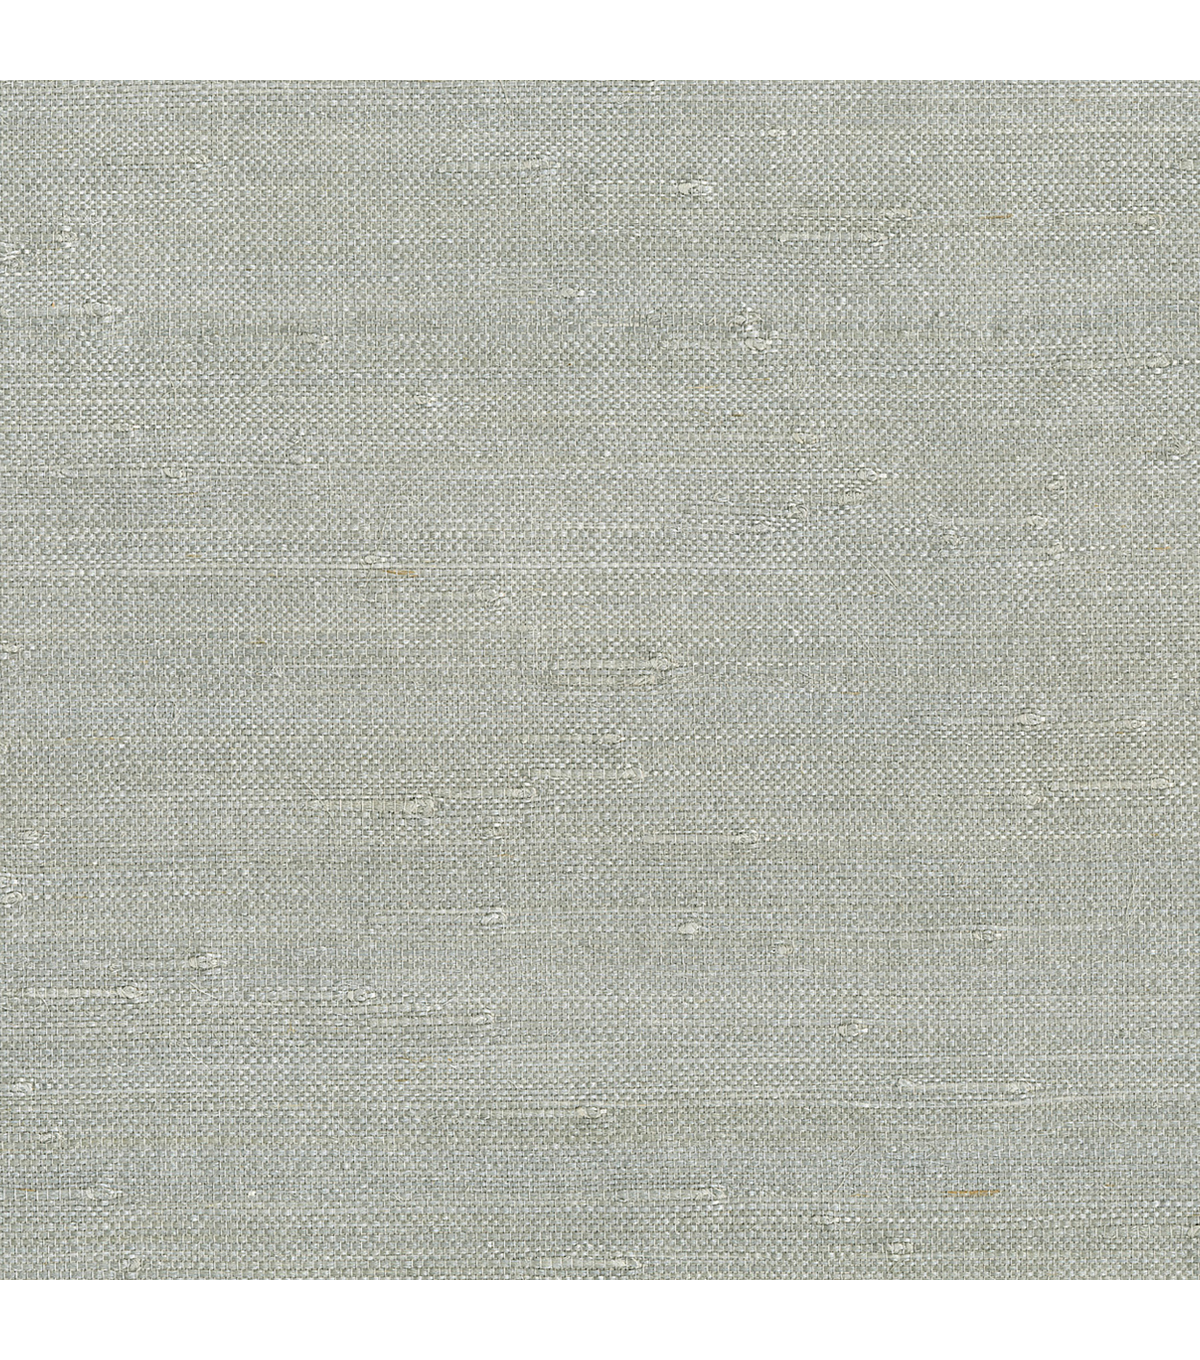 Jin Light Grey Grasscloth Wallpaper Sample